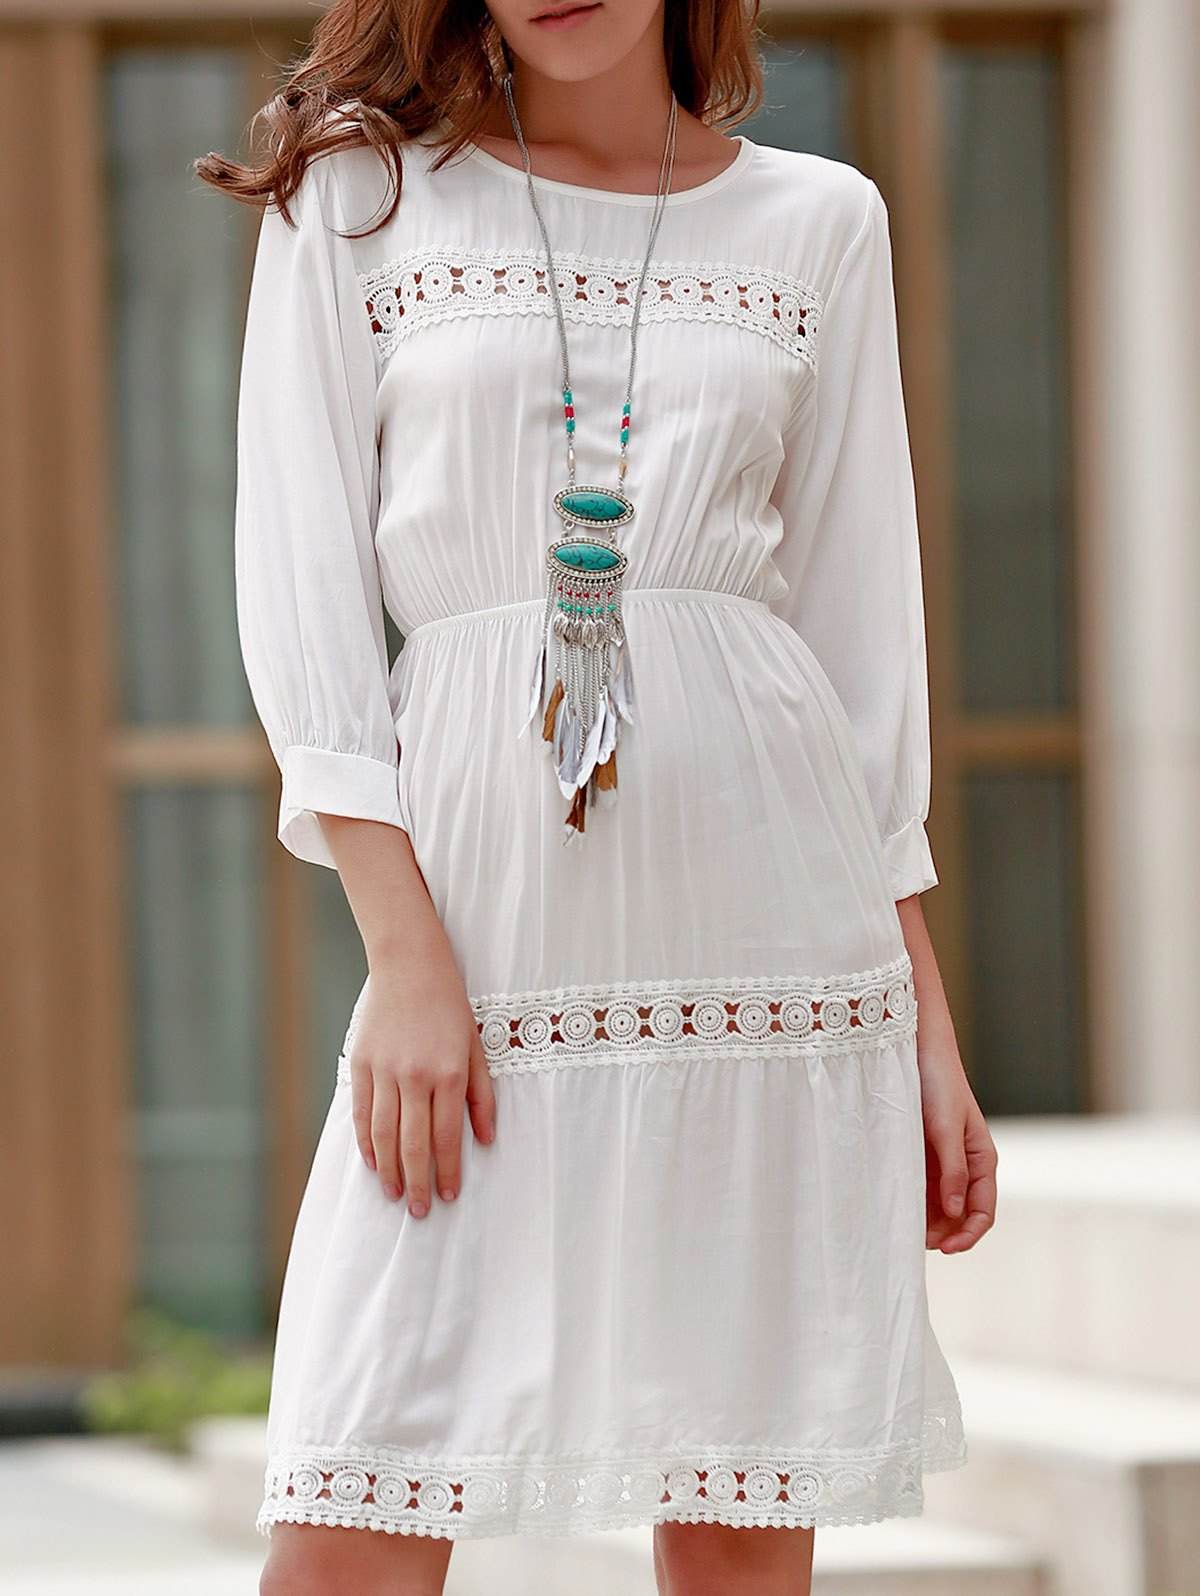 Ladylike Round Collar 3/4 Sleeve White Hollow Out Women's Dress - ONE SIZE(FIT SIZE XS TO M) WHITE